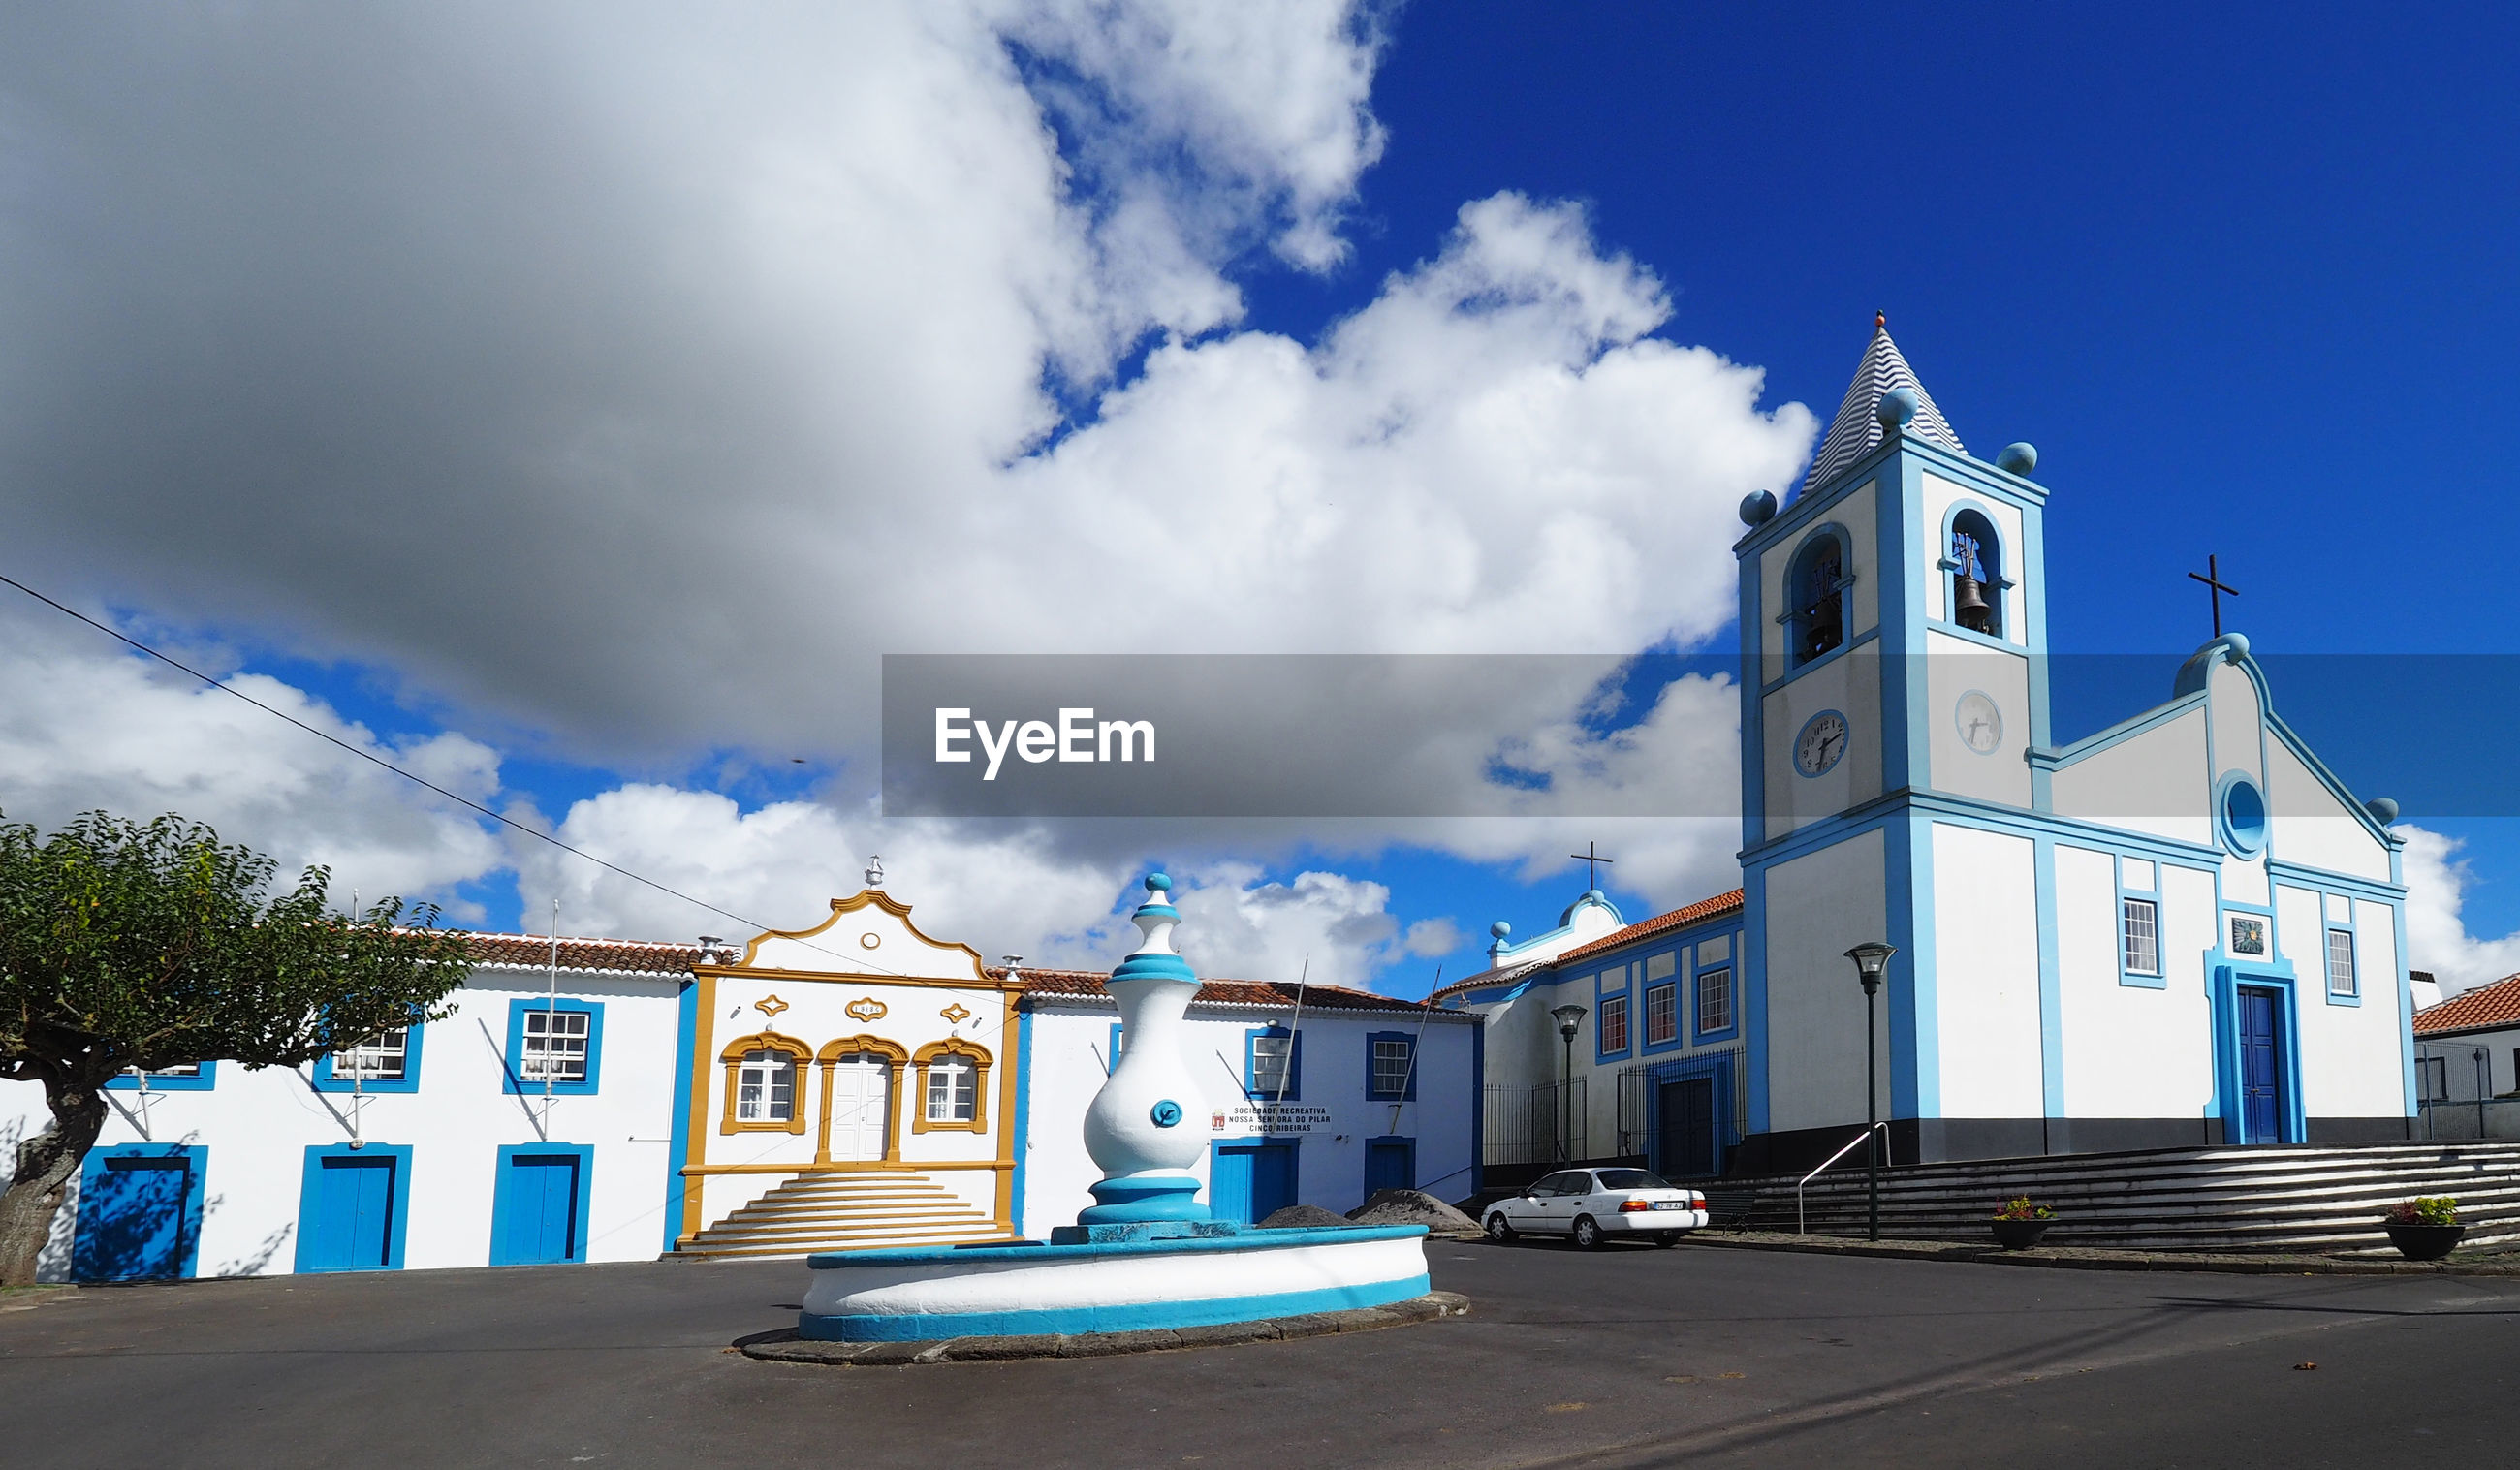 cloud - sky, building exterior, architecture, travel destinations, sky, outdoors, no people, place of worship, day, clock